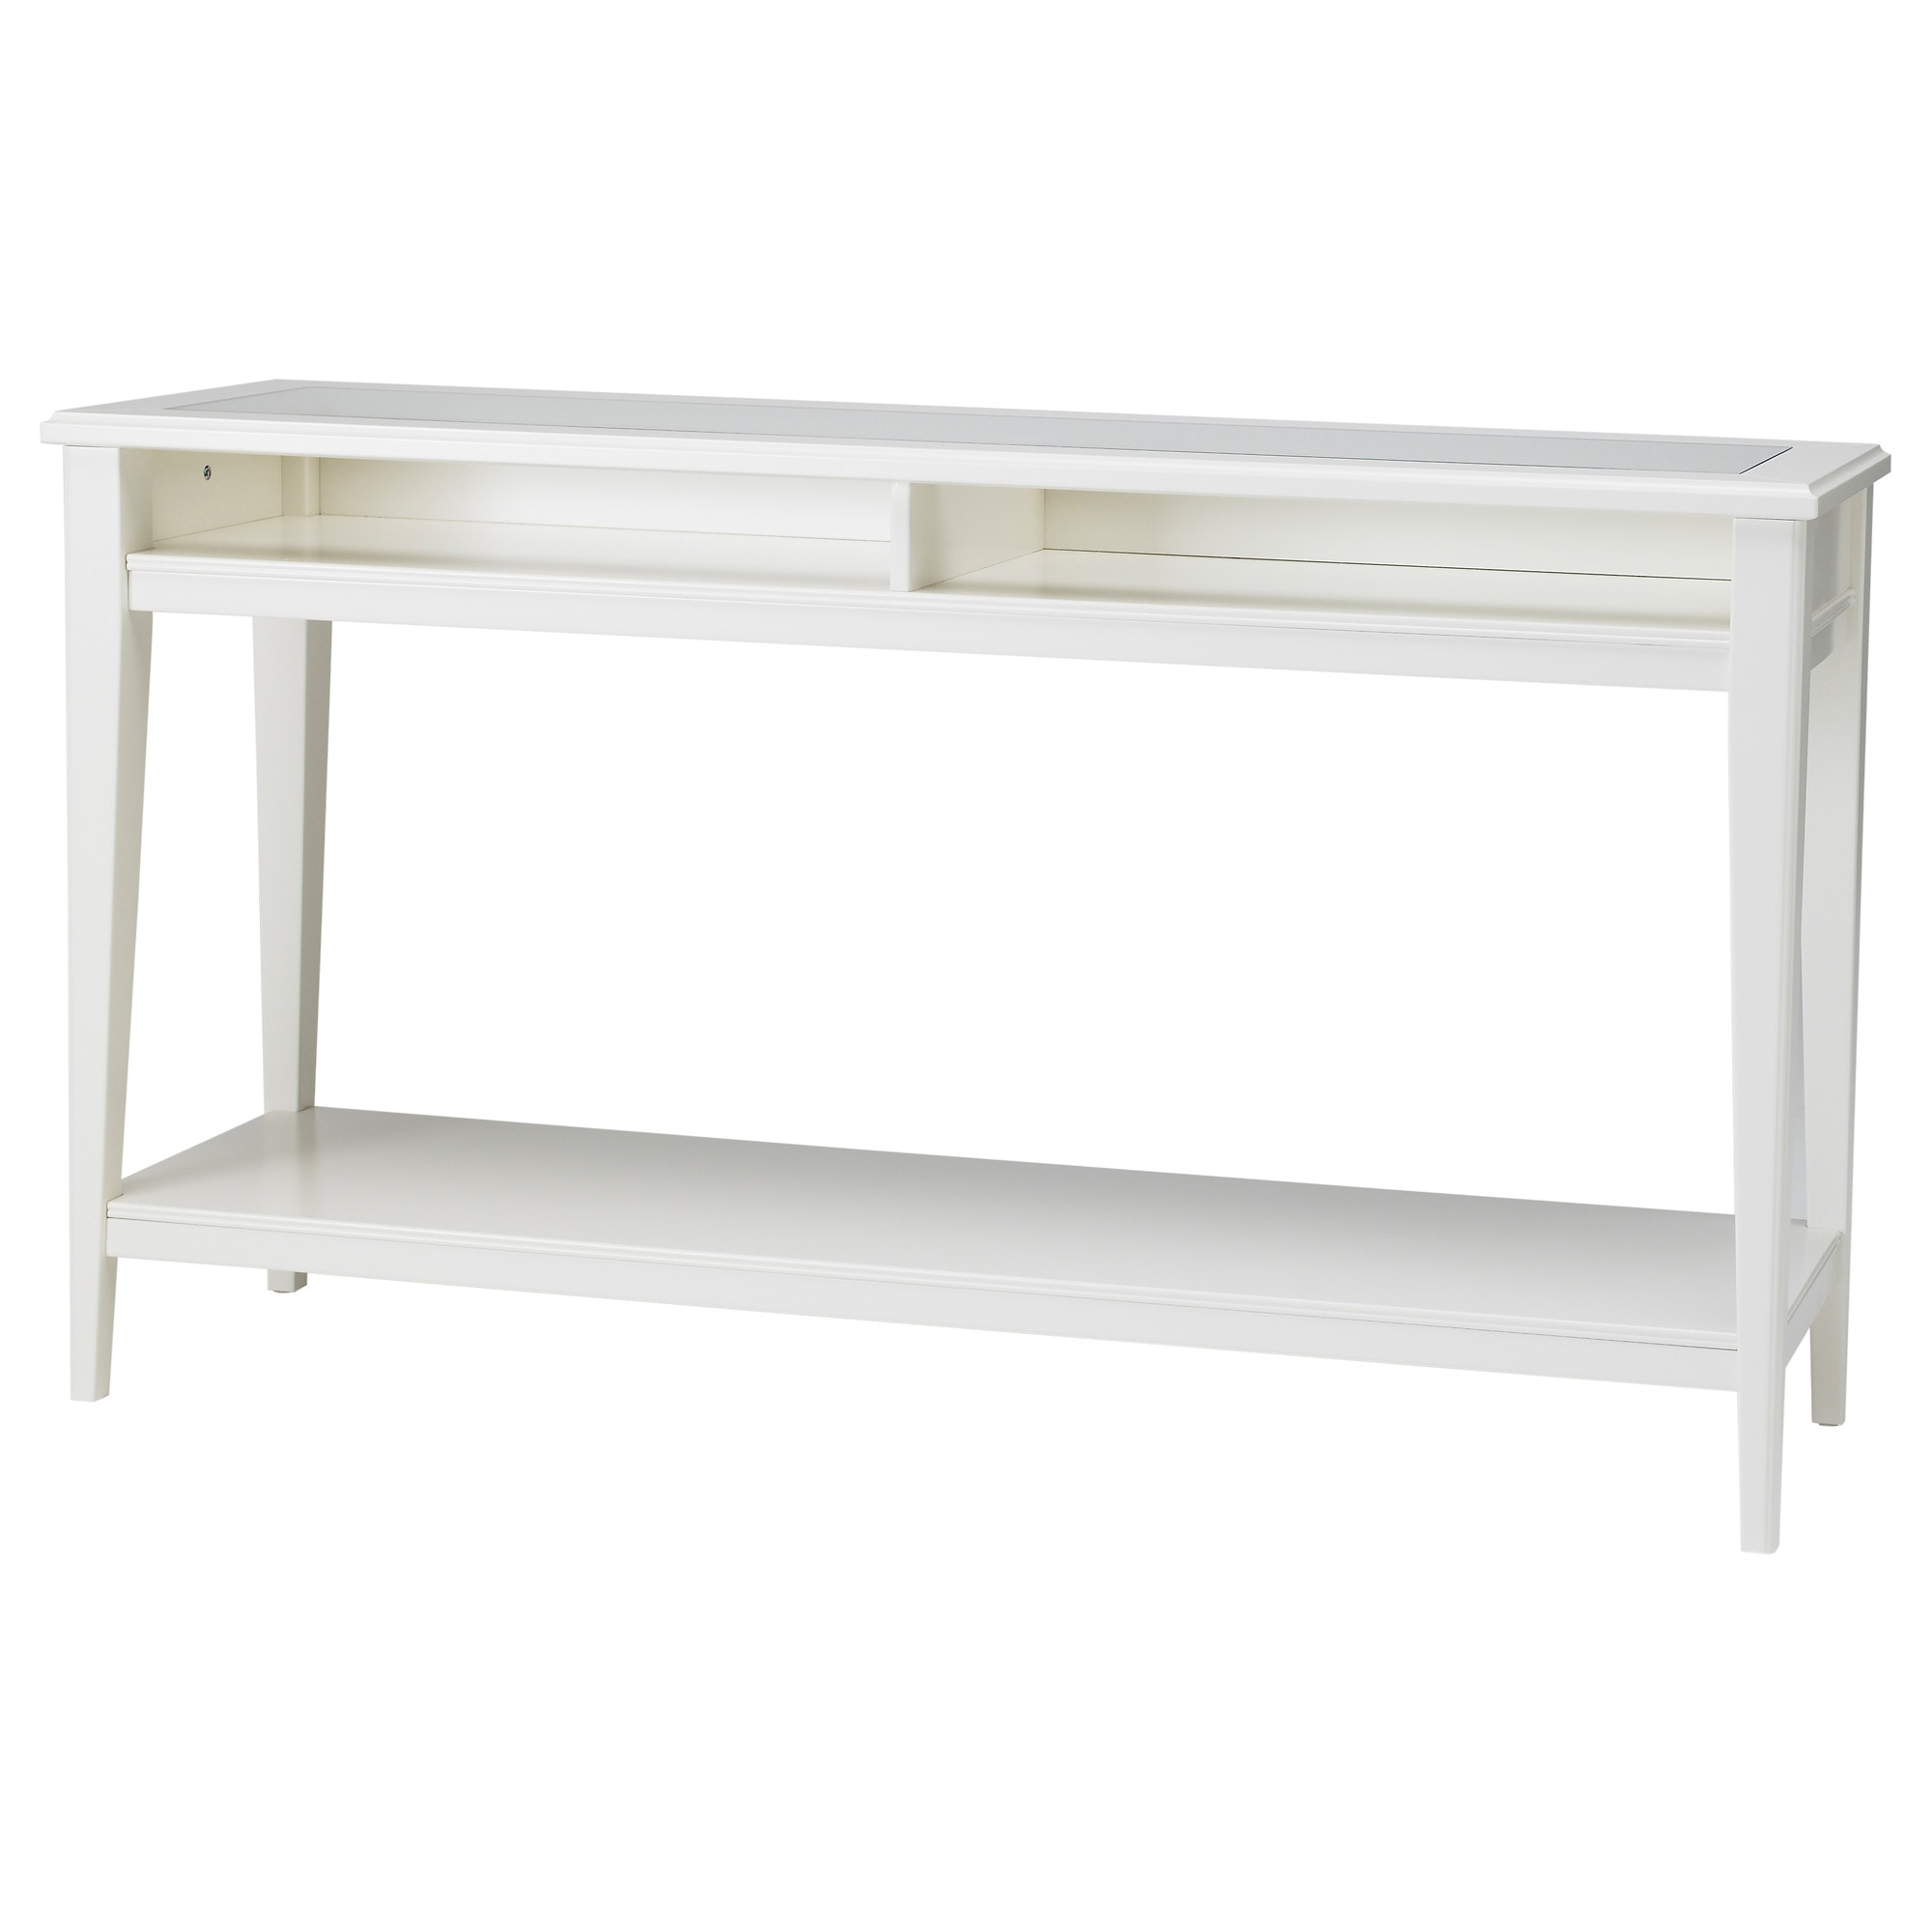 Exceptional LIATORP Console Table   White/glass   IKEA